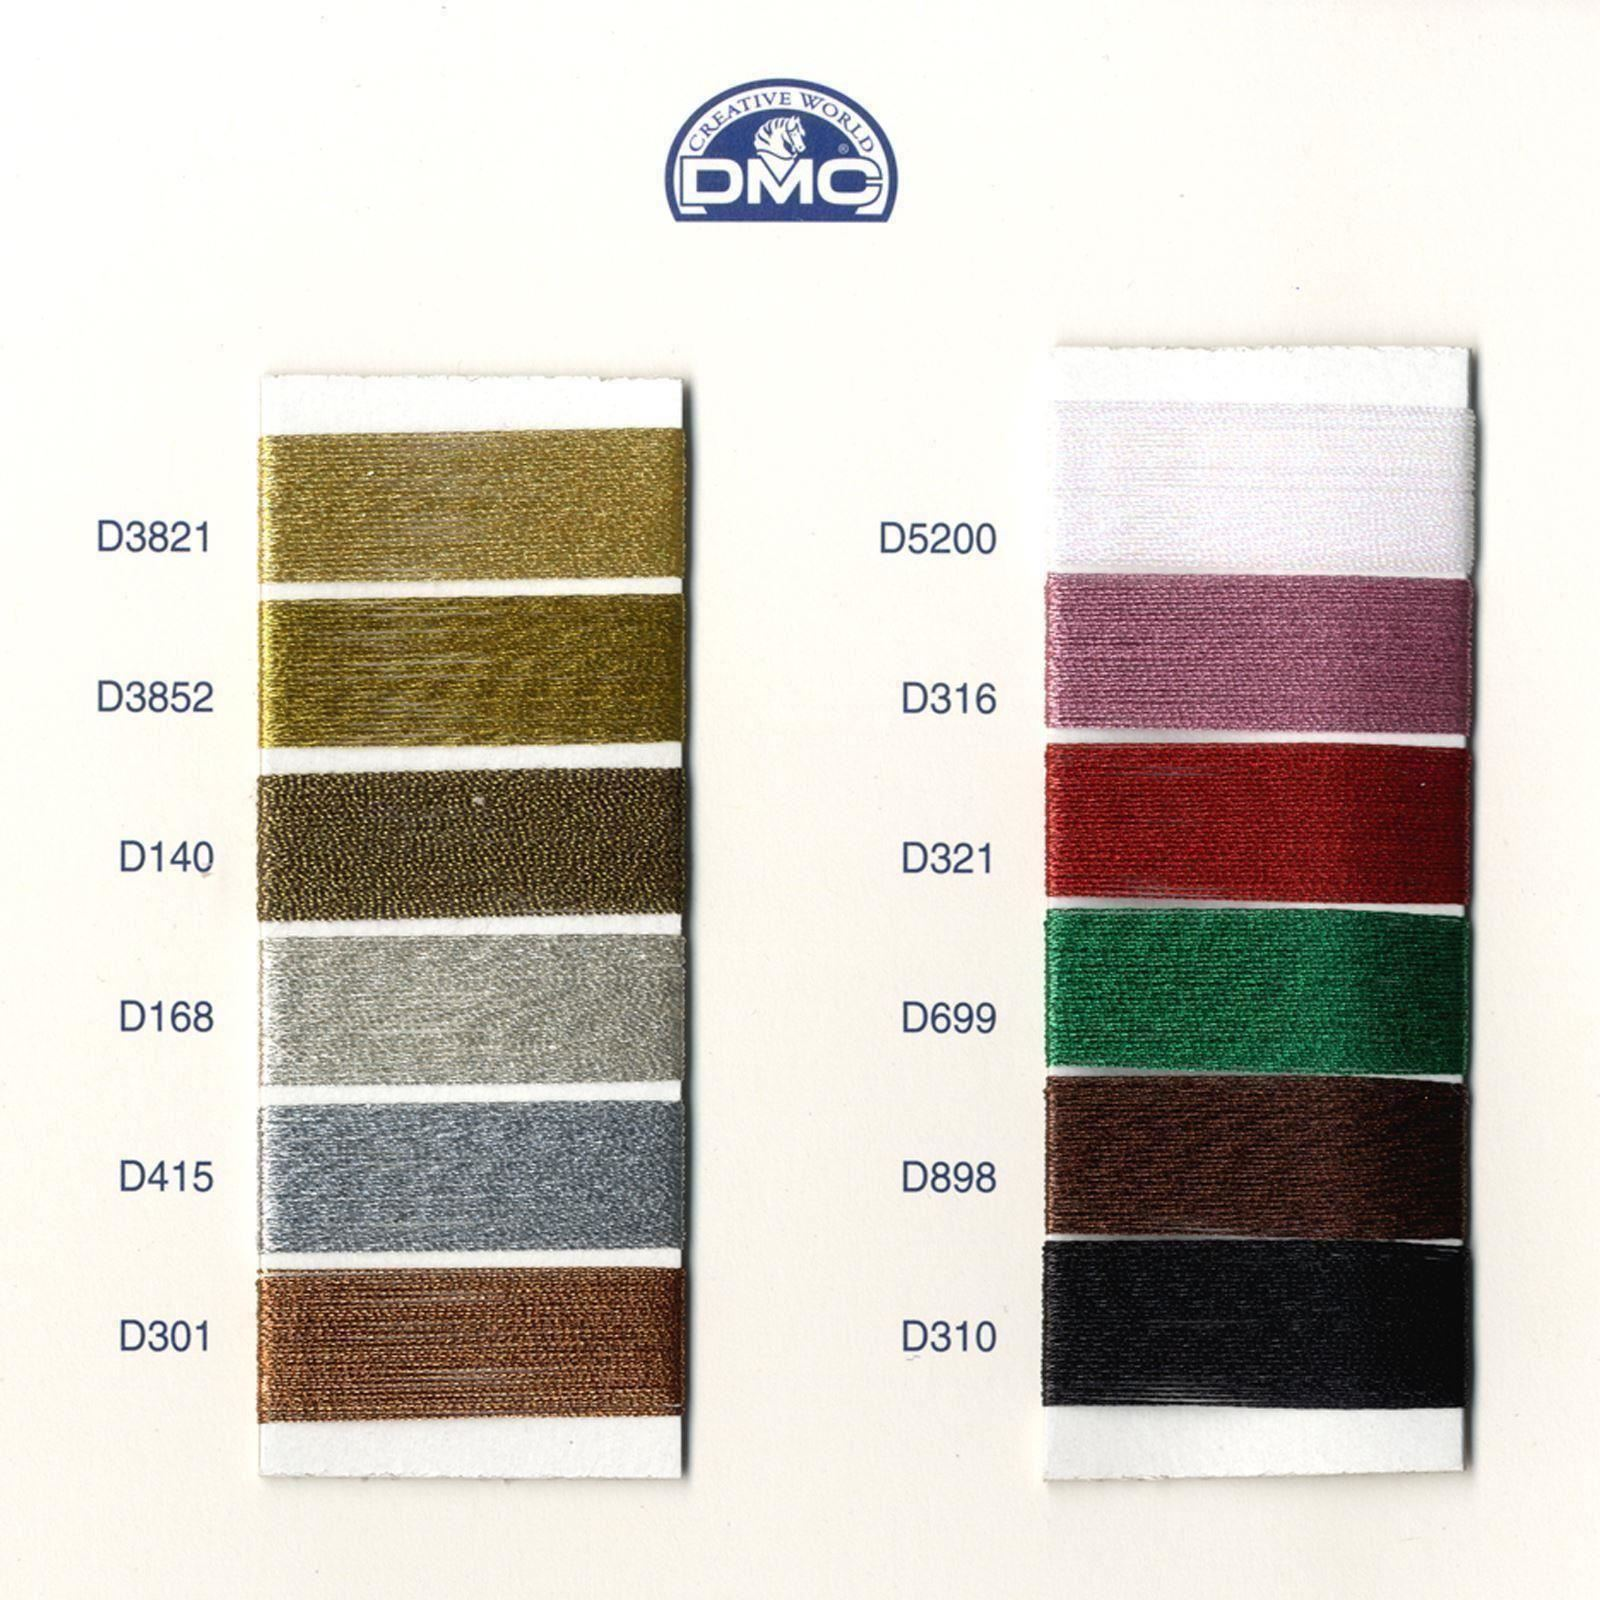 DMC-Diamant-Metallic-Embroidery-Thread-35m-Spool-Cross-Stitch thumbnail 12